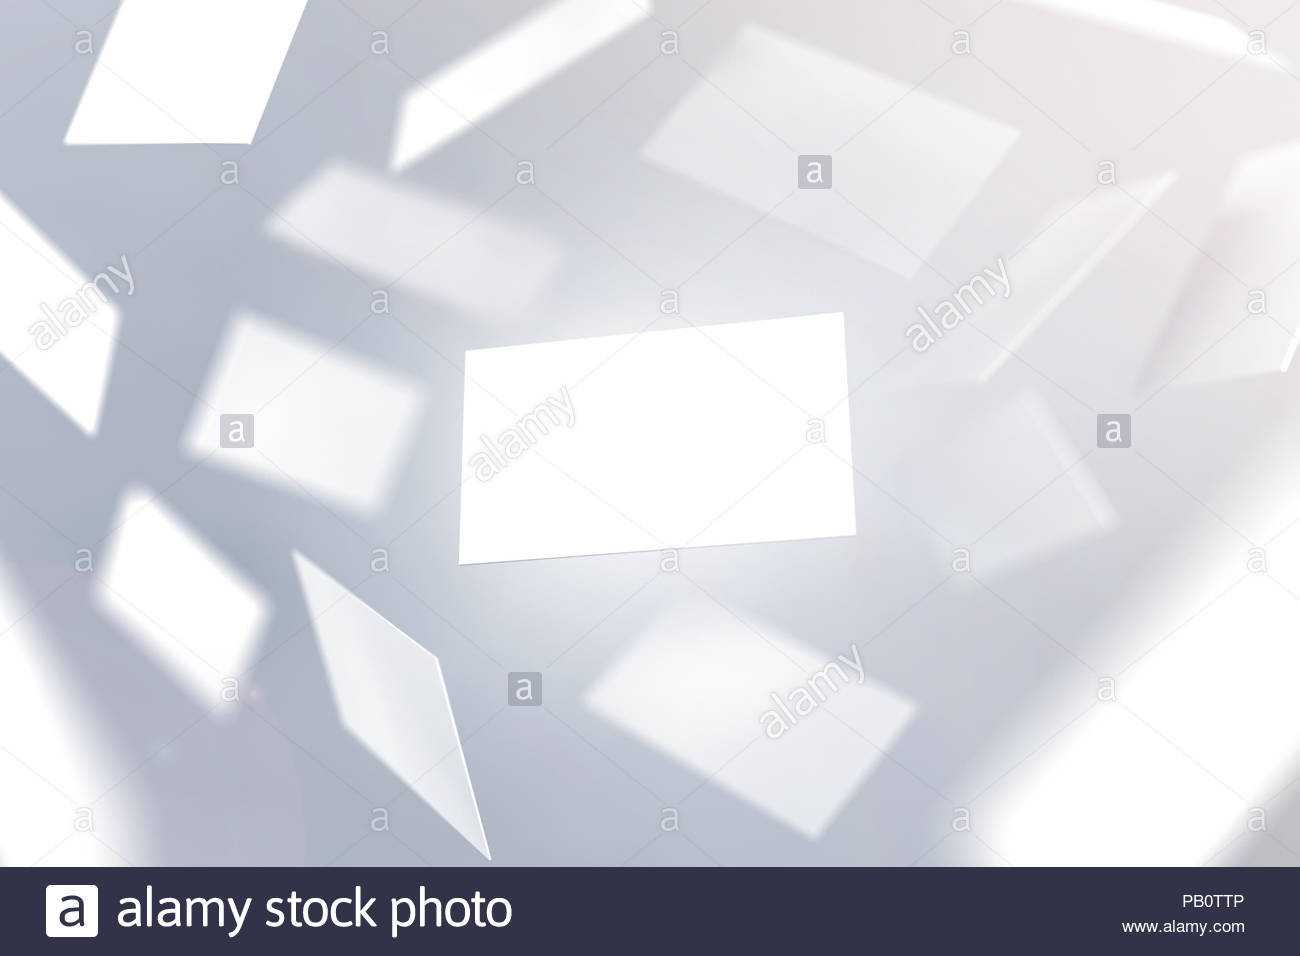 Blank Business Cards Falling, 3D Rendering. Namecard Design Throughout Template For Calling Card